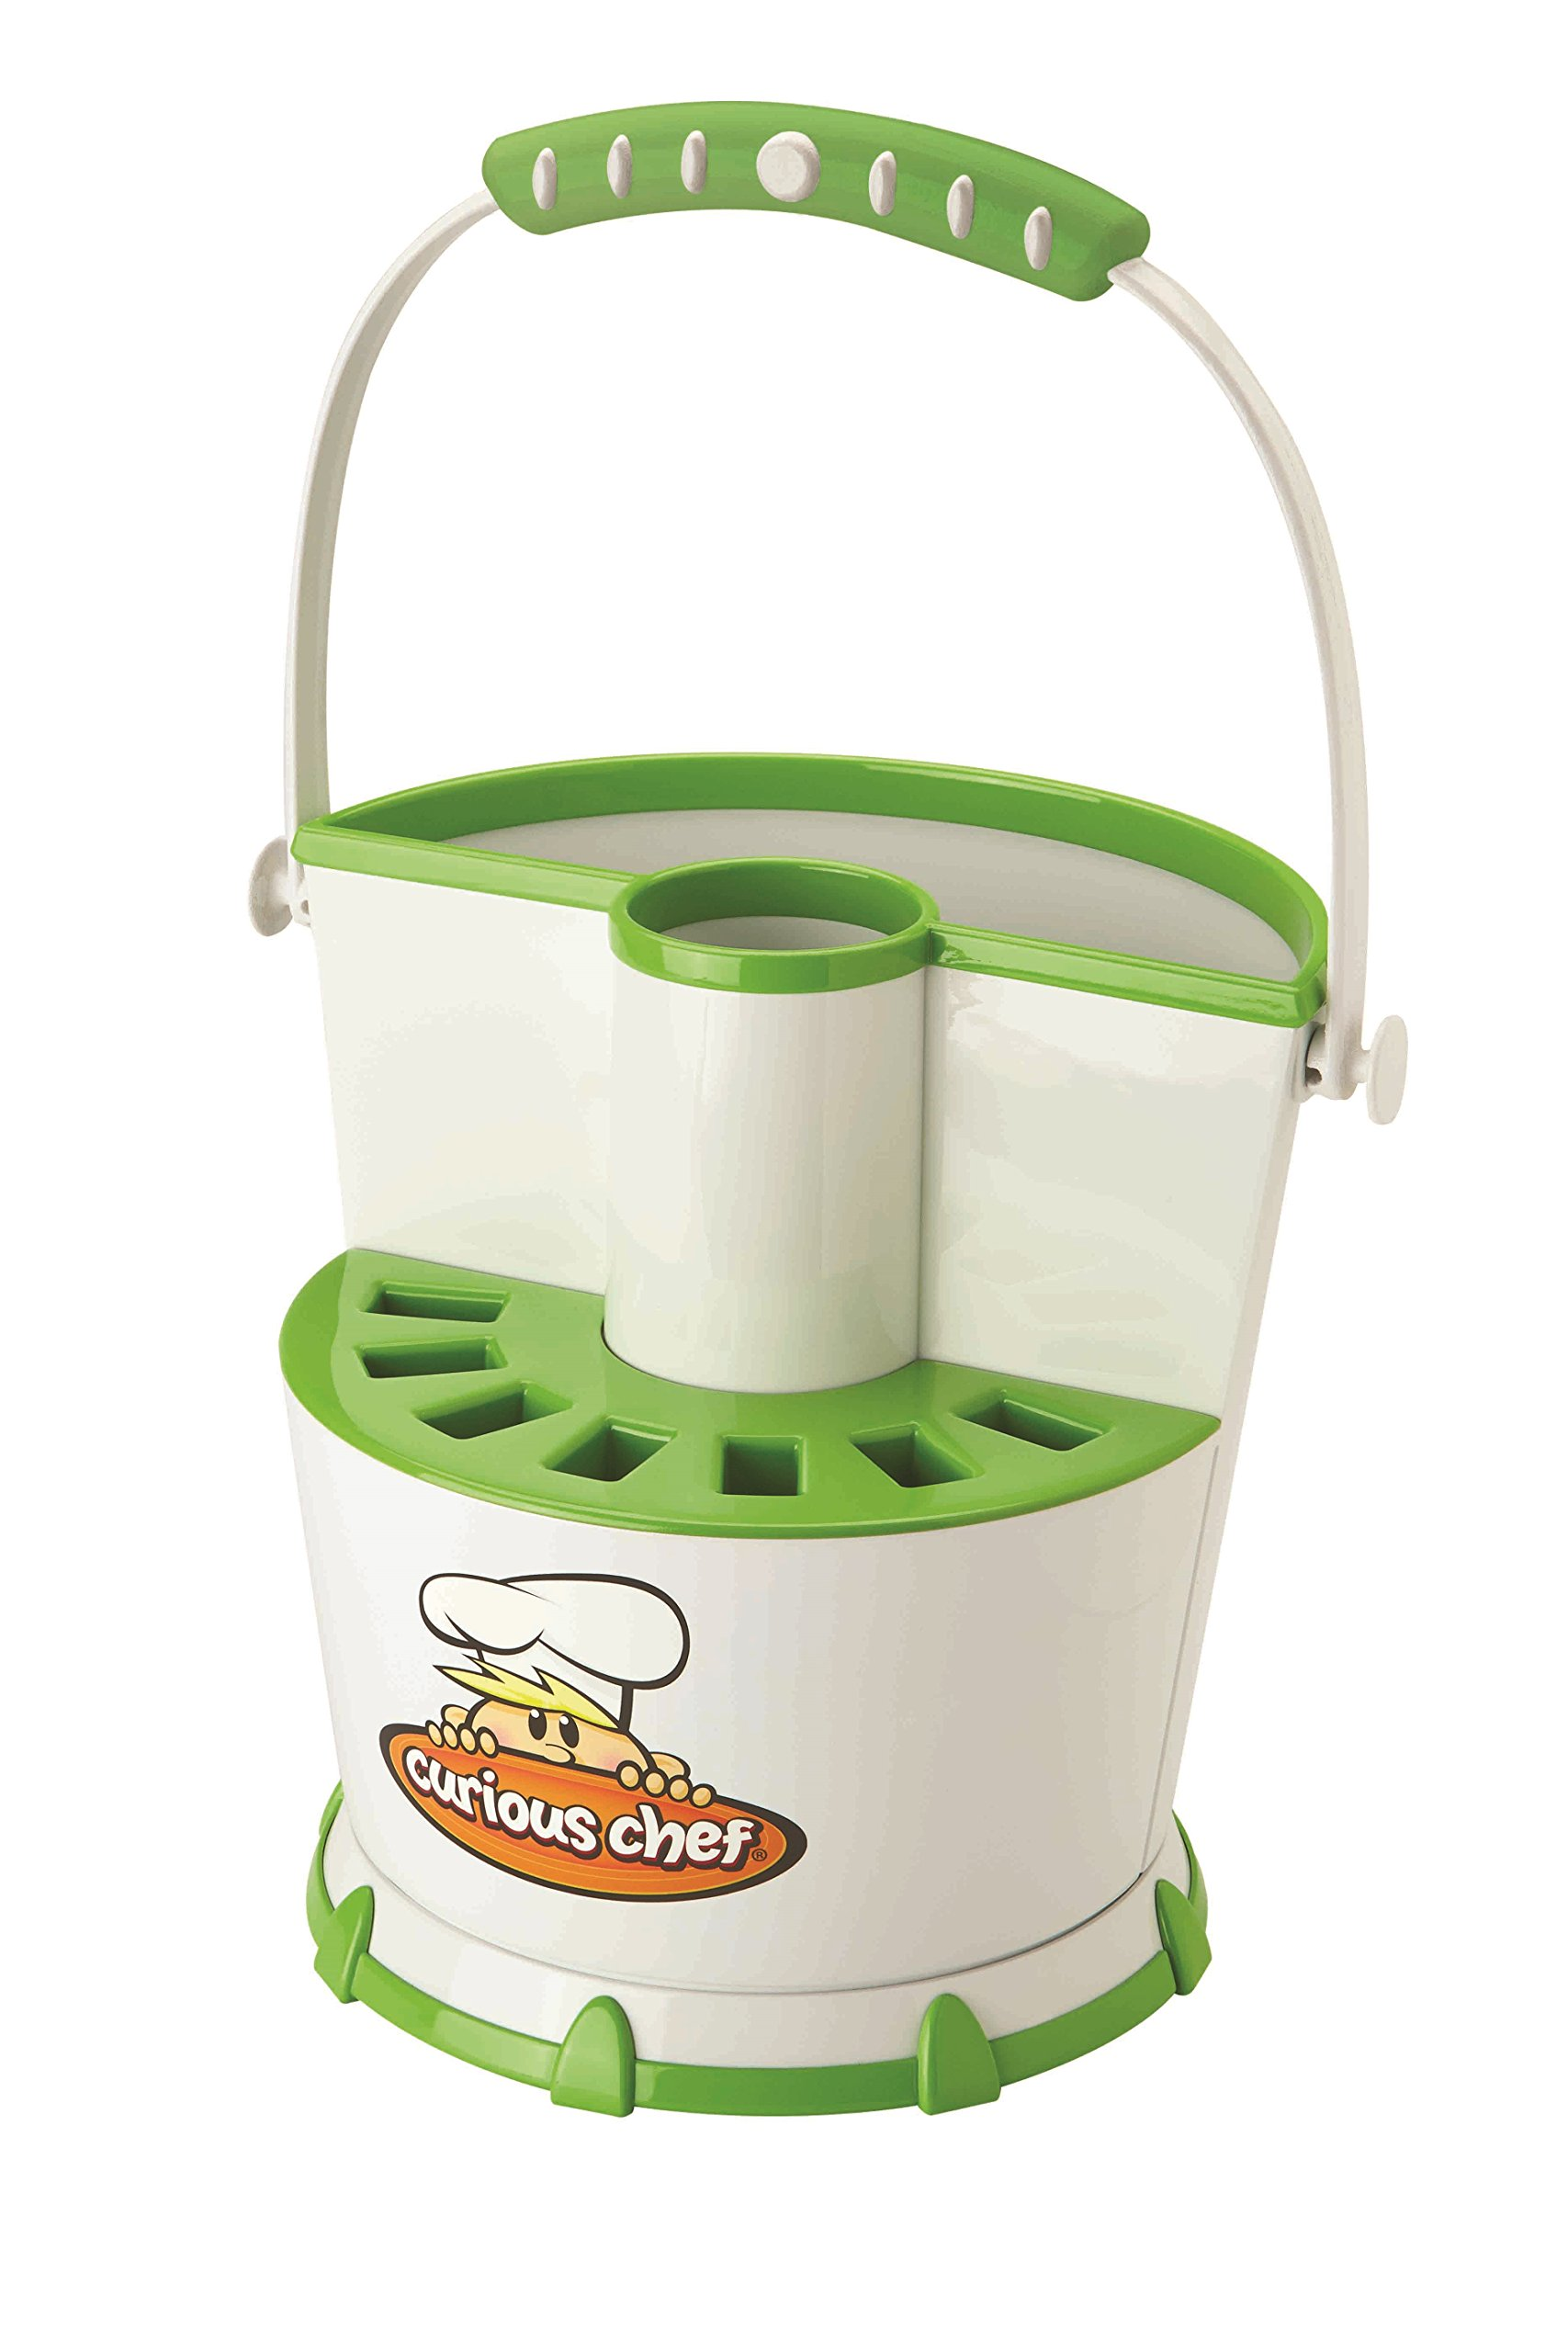 Curious Chef TCC50194 Tool Caddy, One, Multicolored by Curious Chef (Image #1)